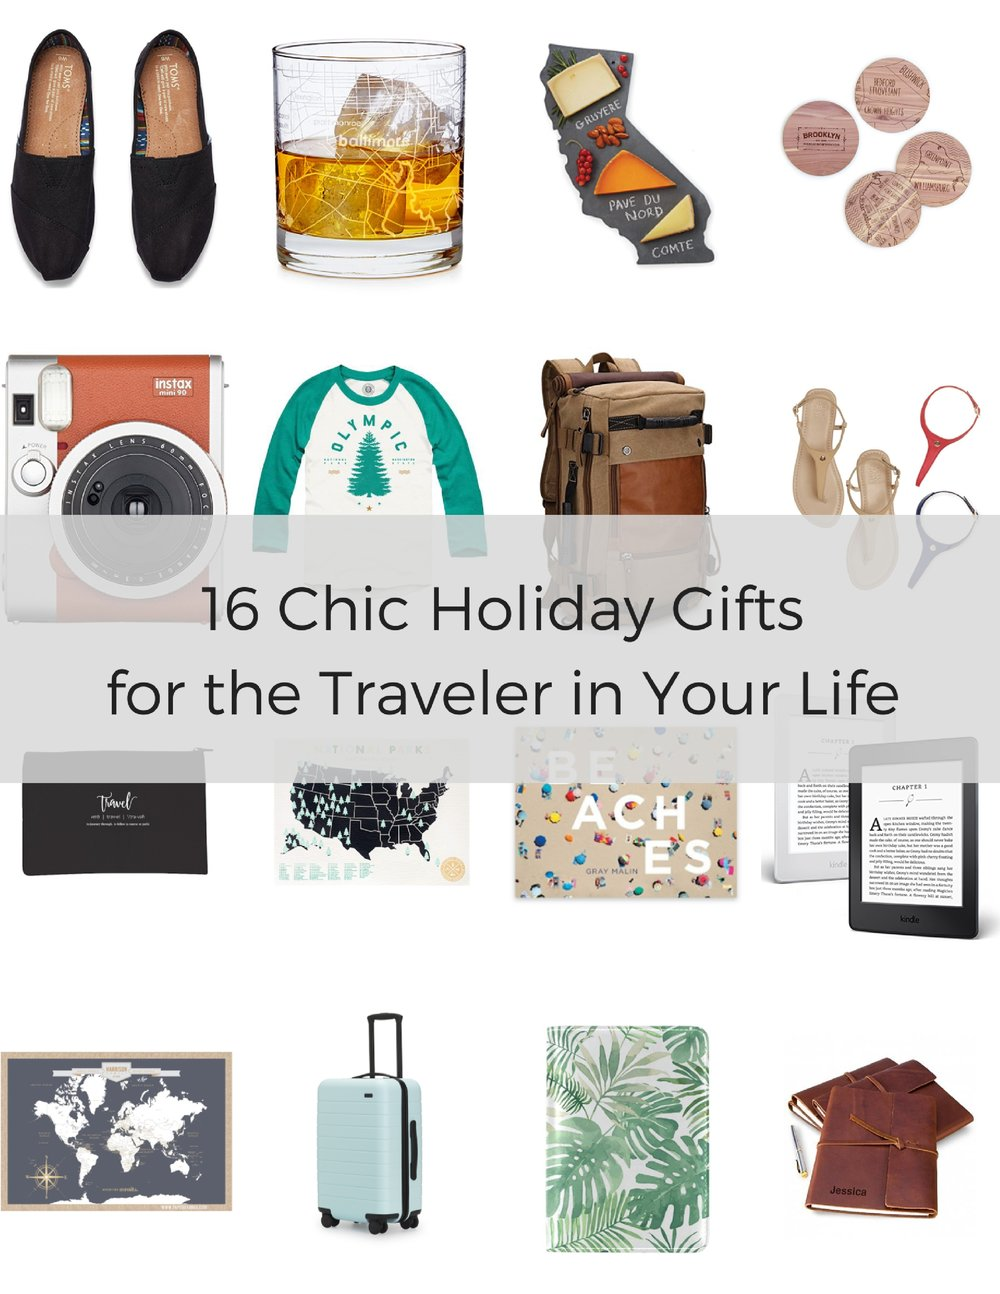 Looking for chic and stylish travel gift ideas for women this holiday season? We've got you covered with our holiday gift guide!